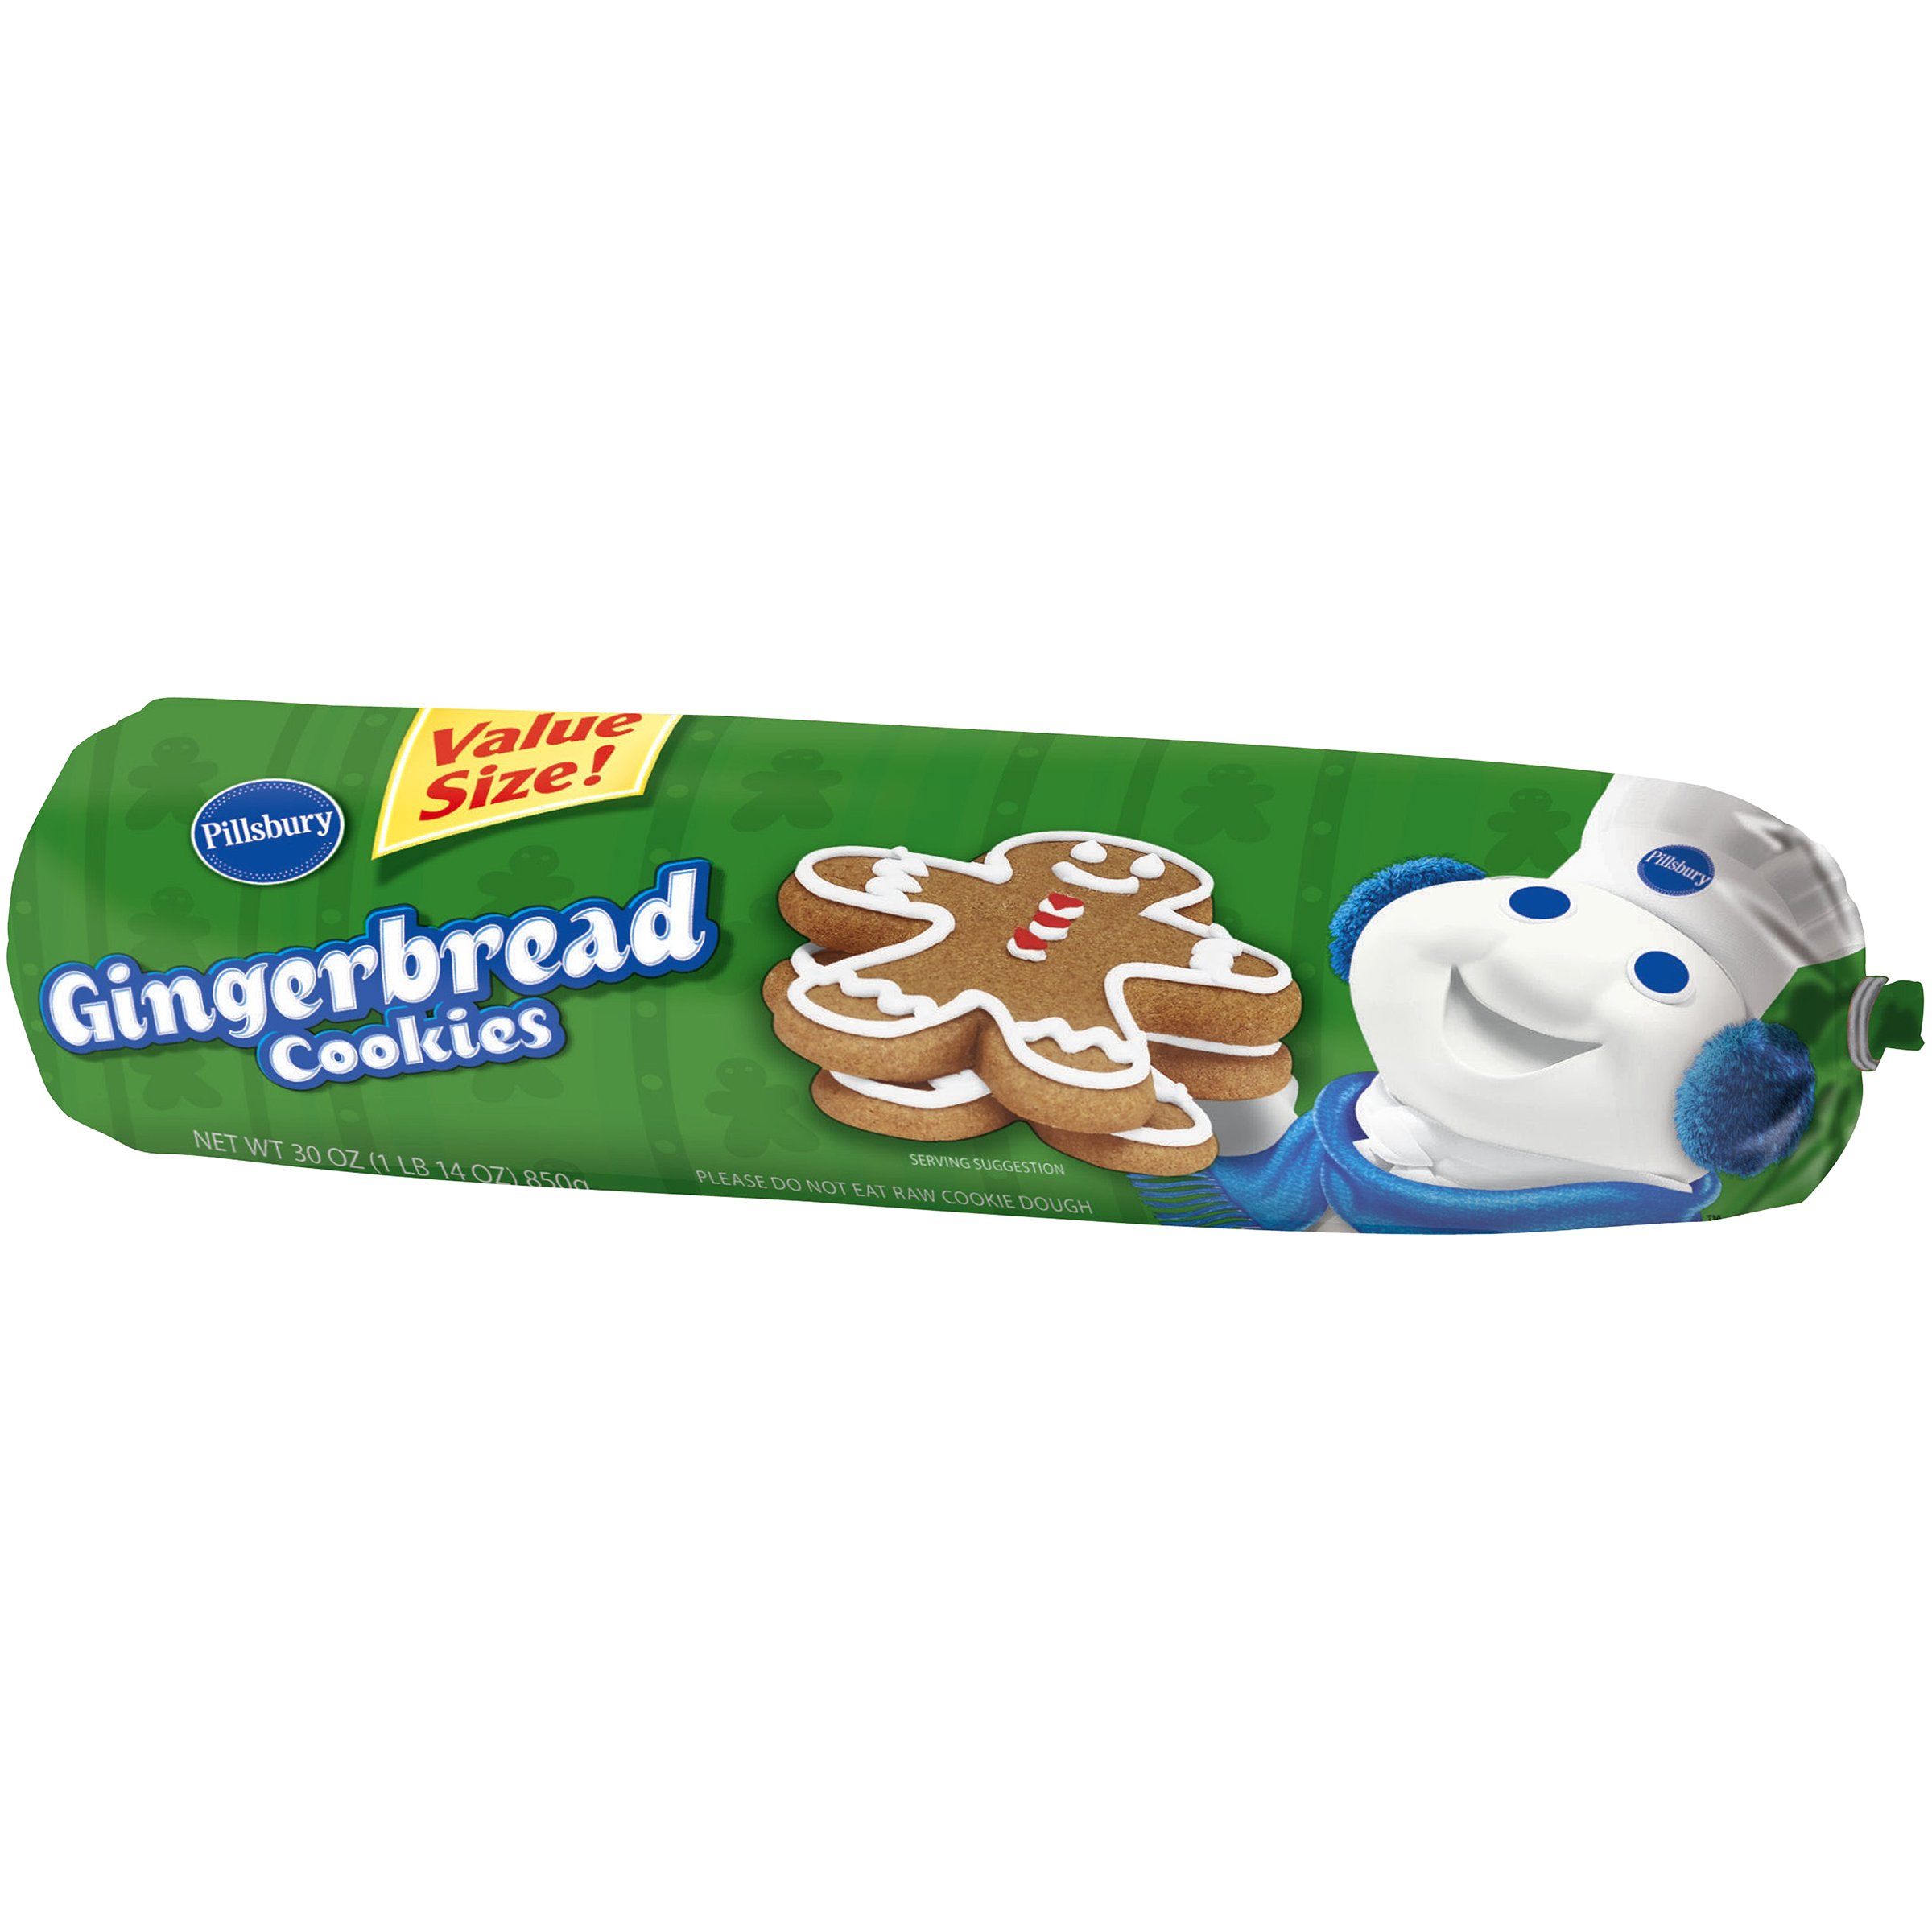 Pillsbury Gingerbread Cookie Chub Shop Biscuit Cookie Dough At H E B